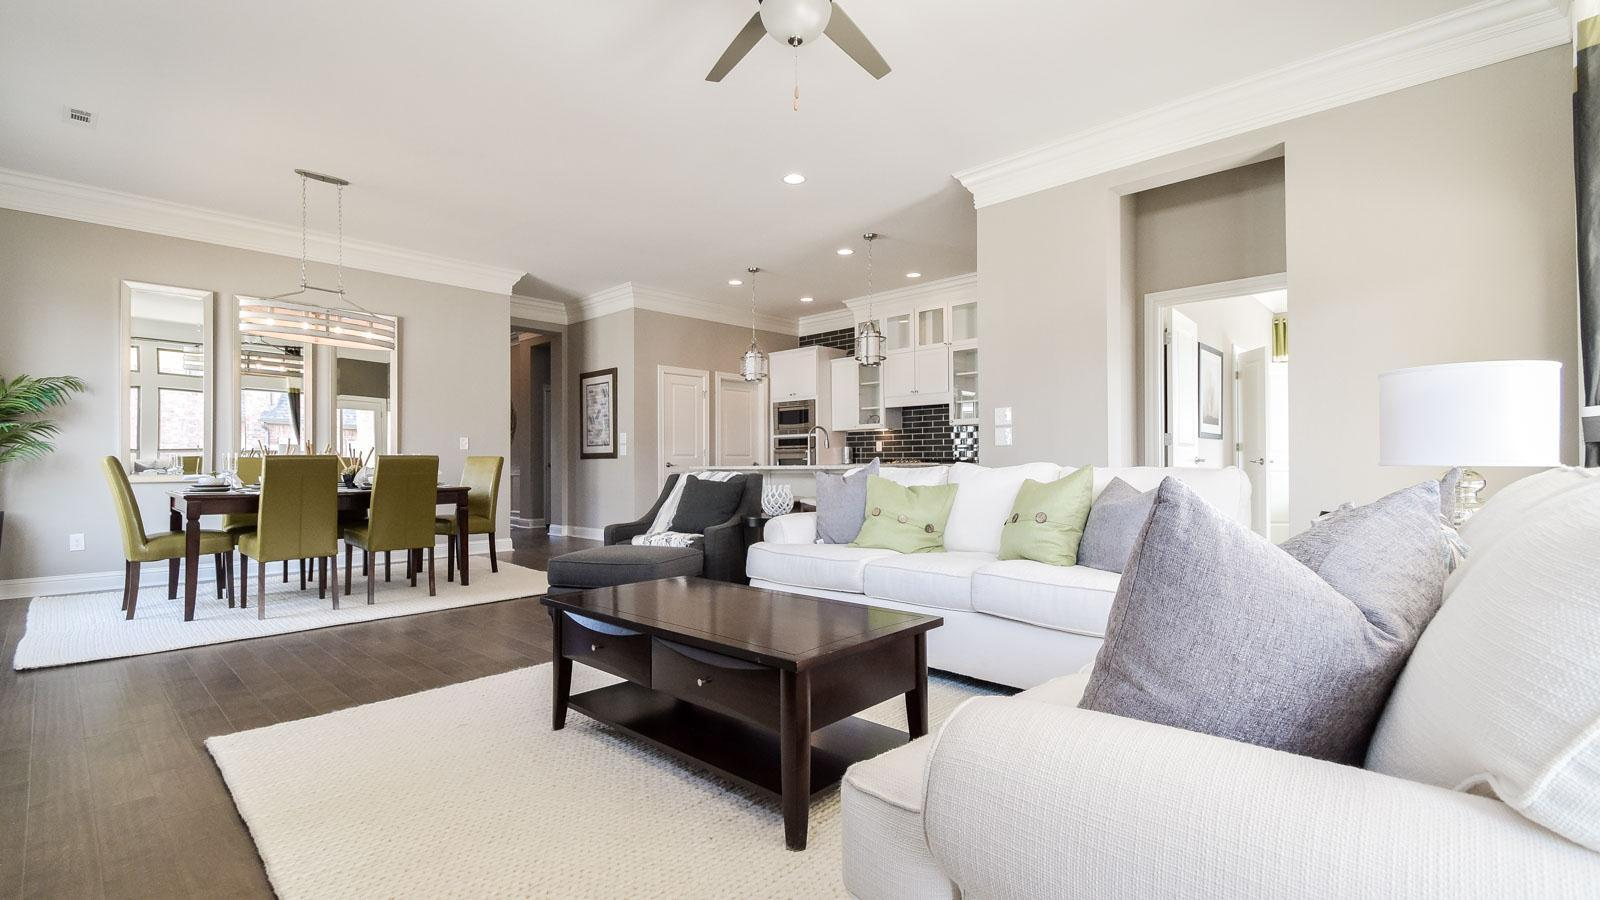 Living Area featured in the Dogwood By Buffington Homes in Fayetteville, AR